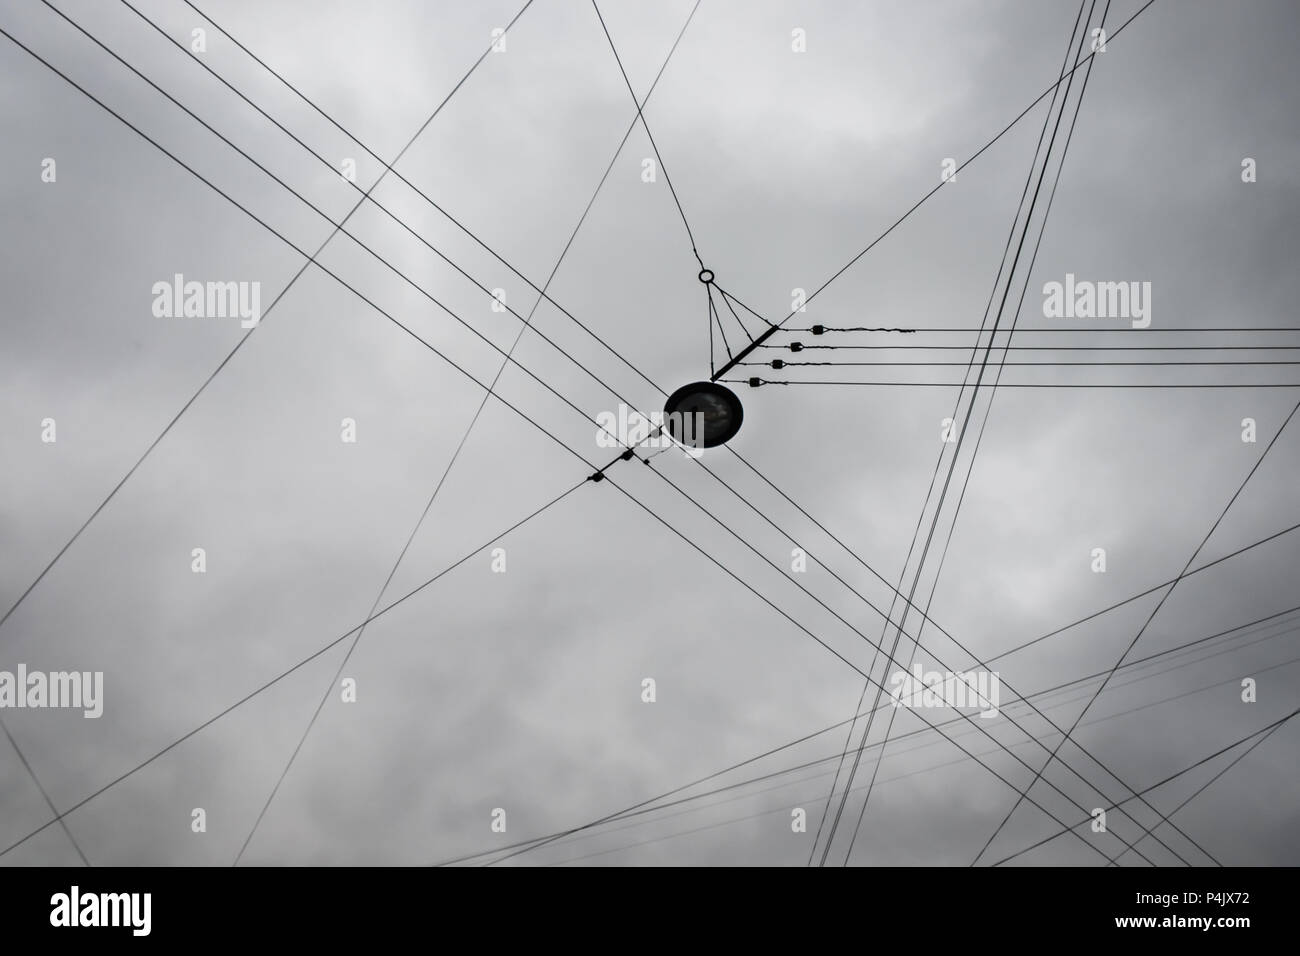 Electric Wires On Autumn Overcast Gray Cloud Sky Background. Abstract Template For Design With Copy Space. - Stock Image